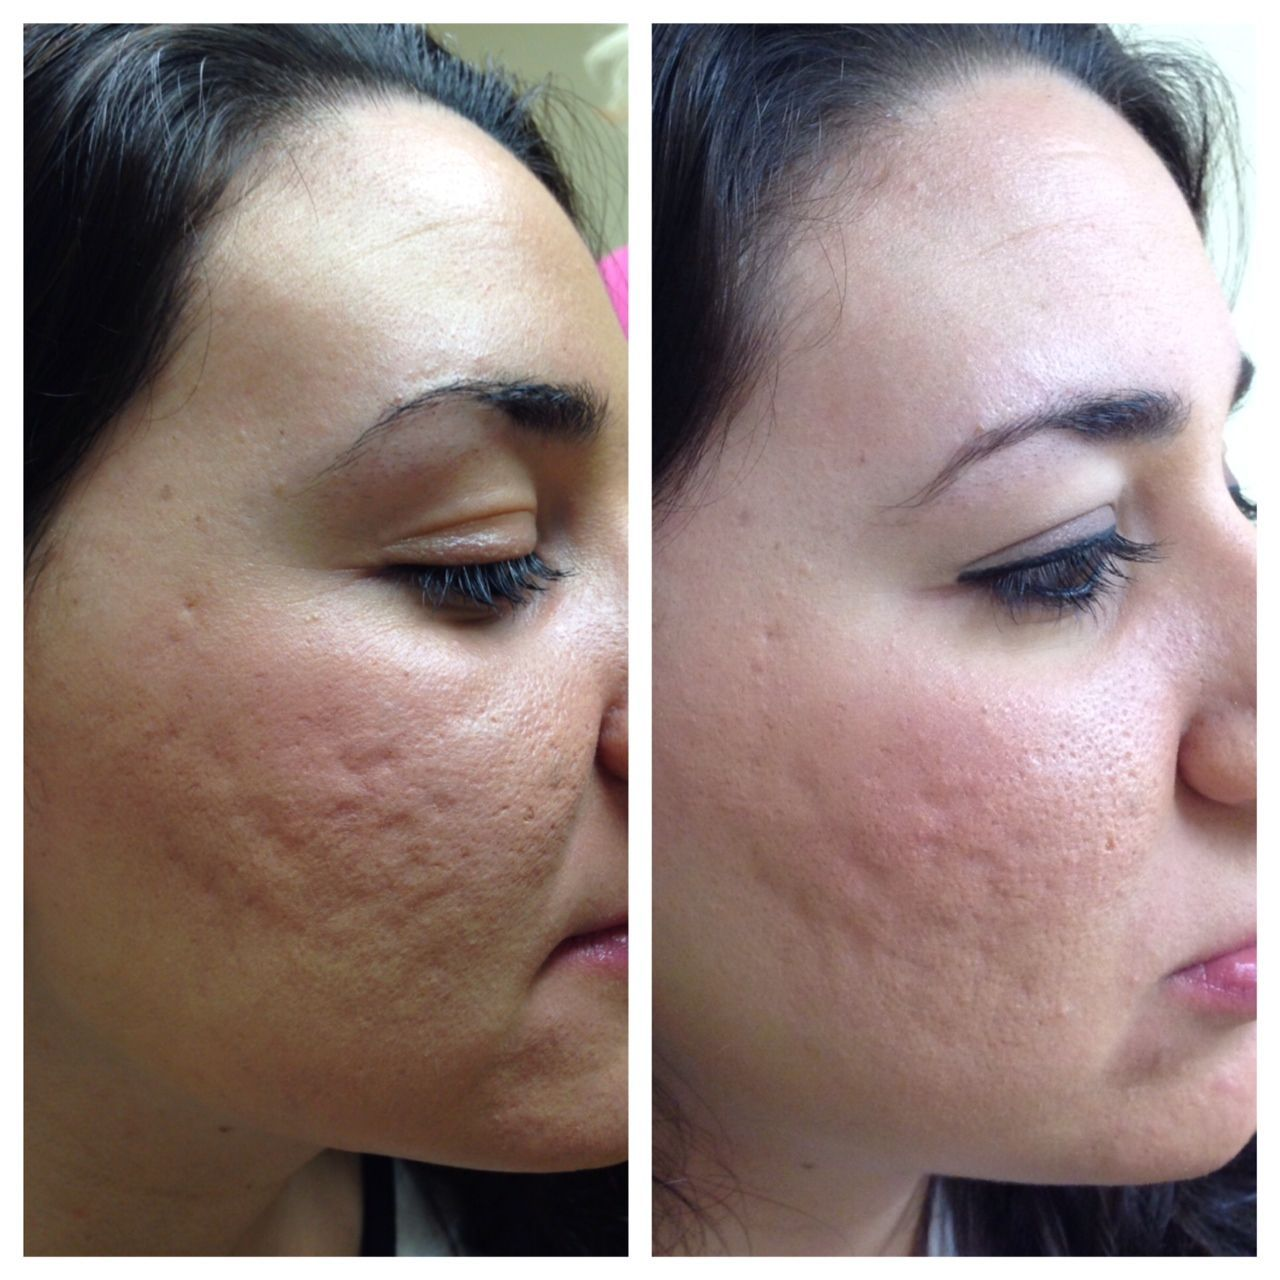 Find new options for your acne treatment and prevention